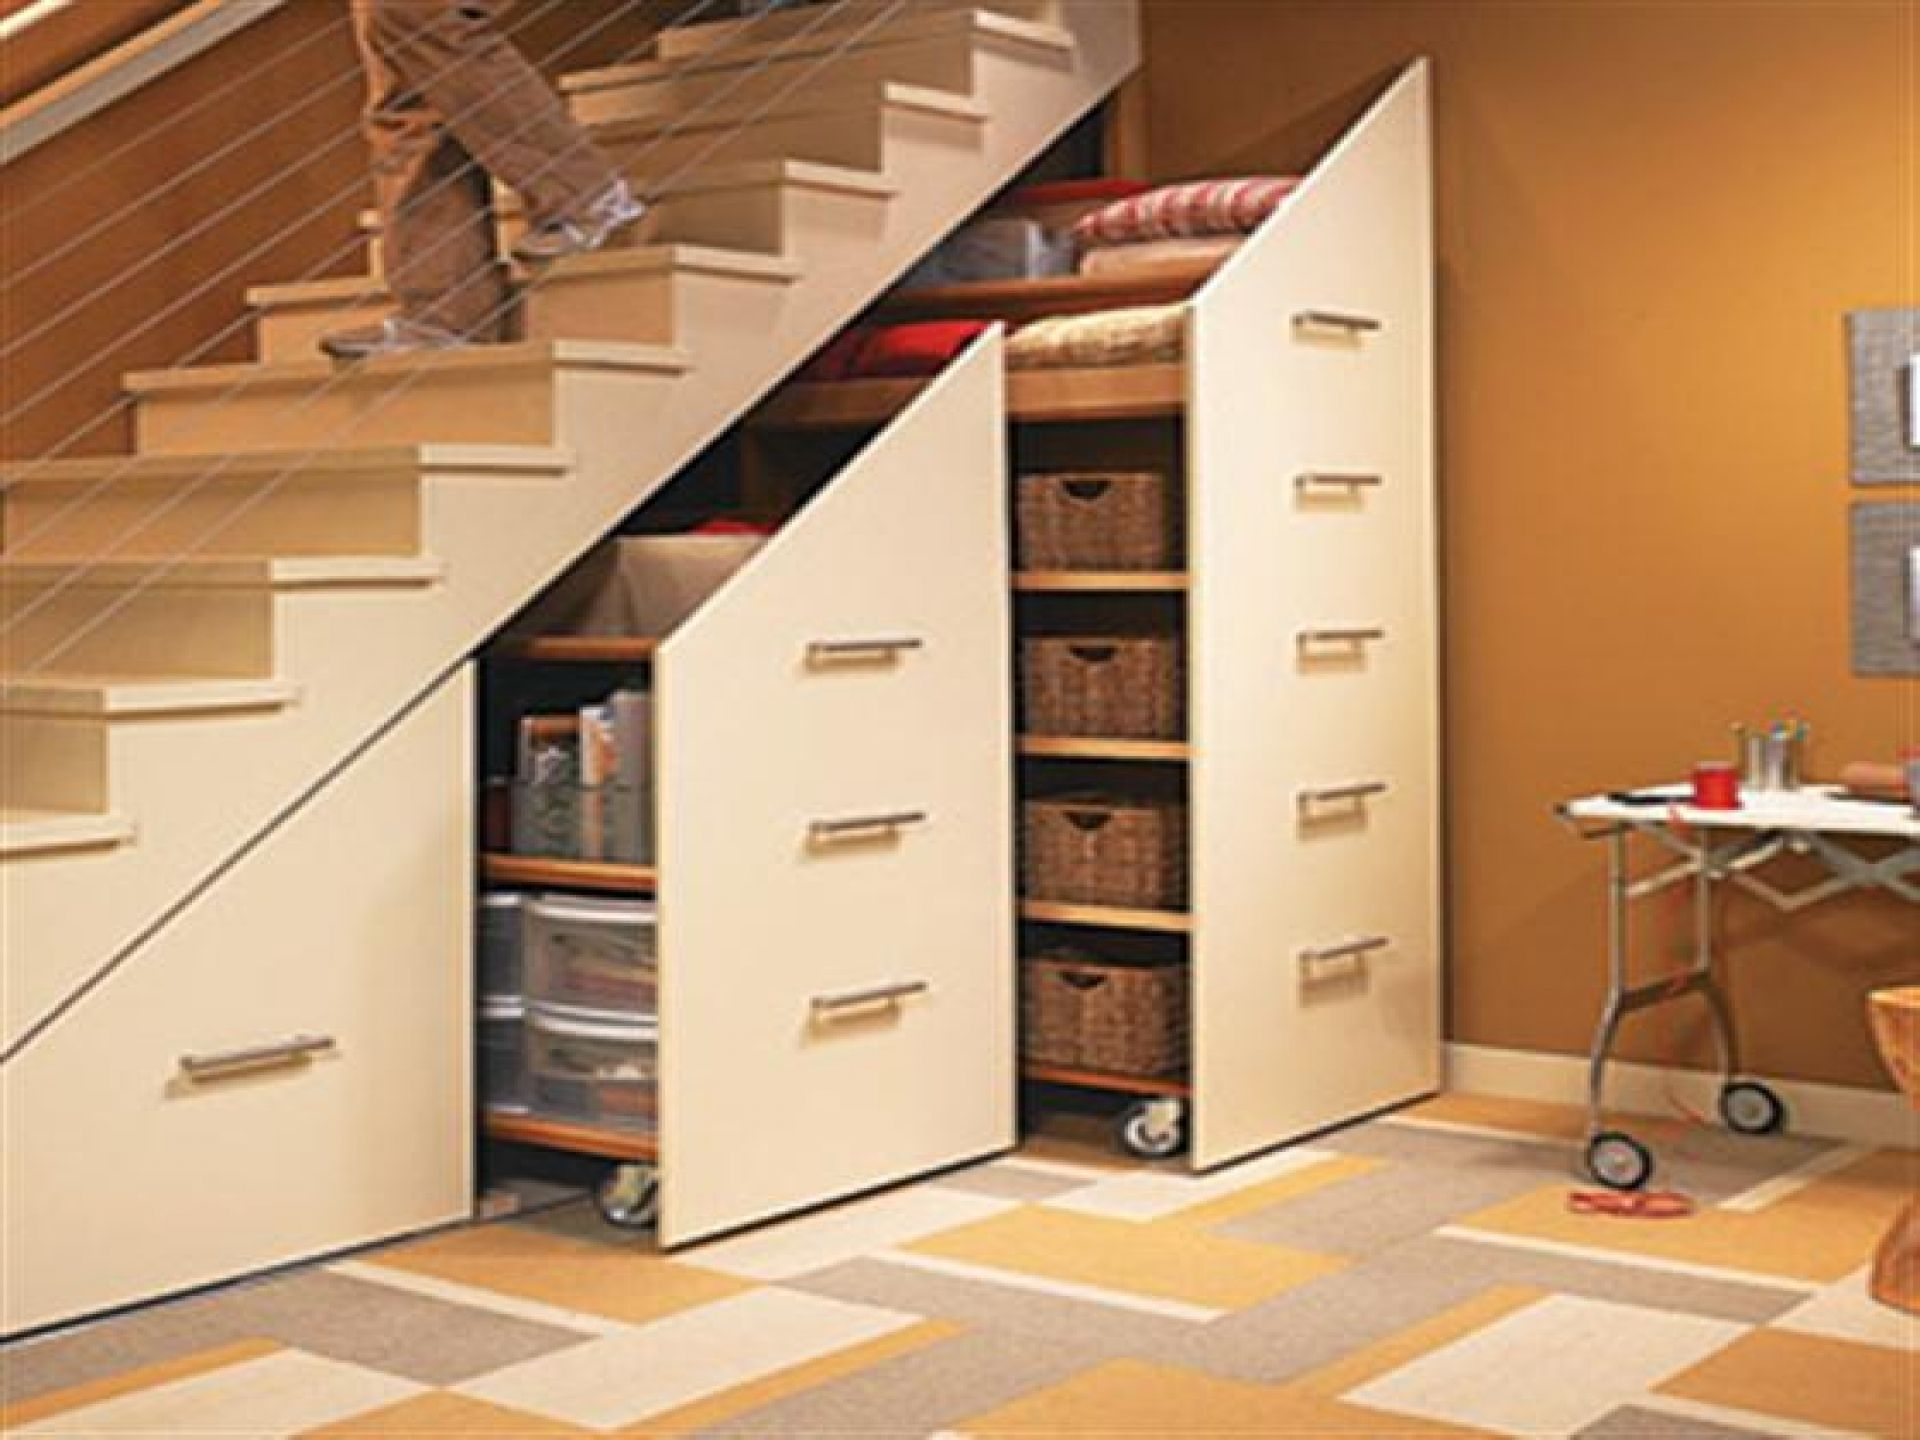 Basement Stair Ideas For Small Spaces: Interior Stunning Home Storage Solution Side With Crafting